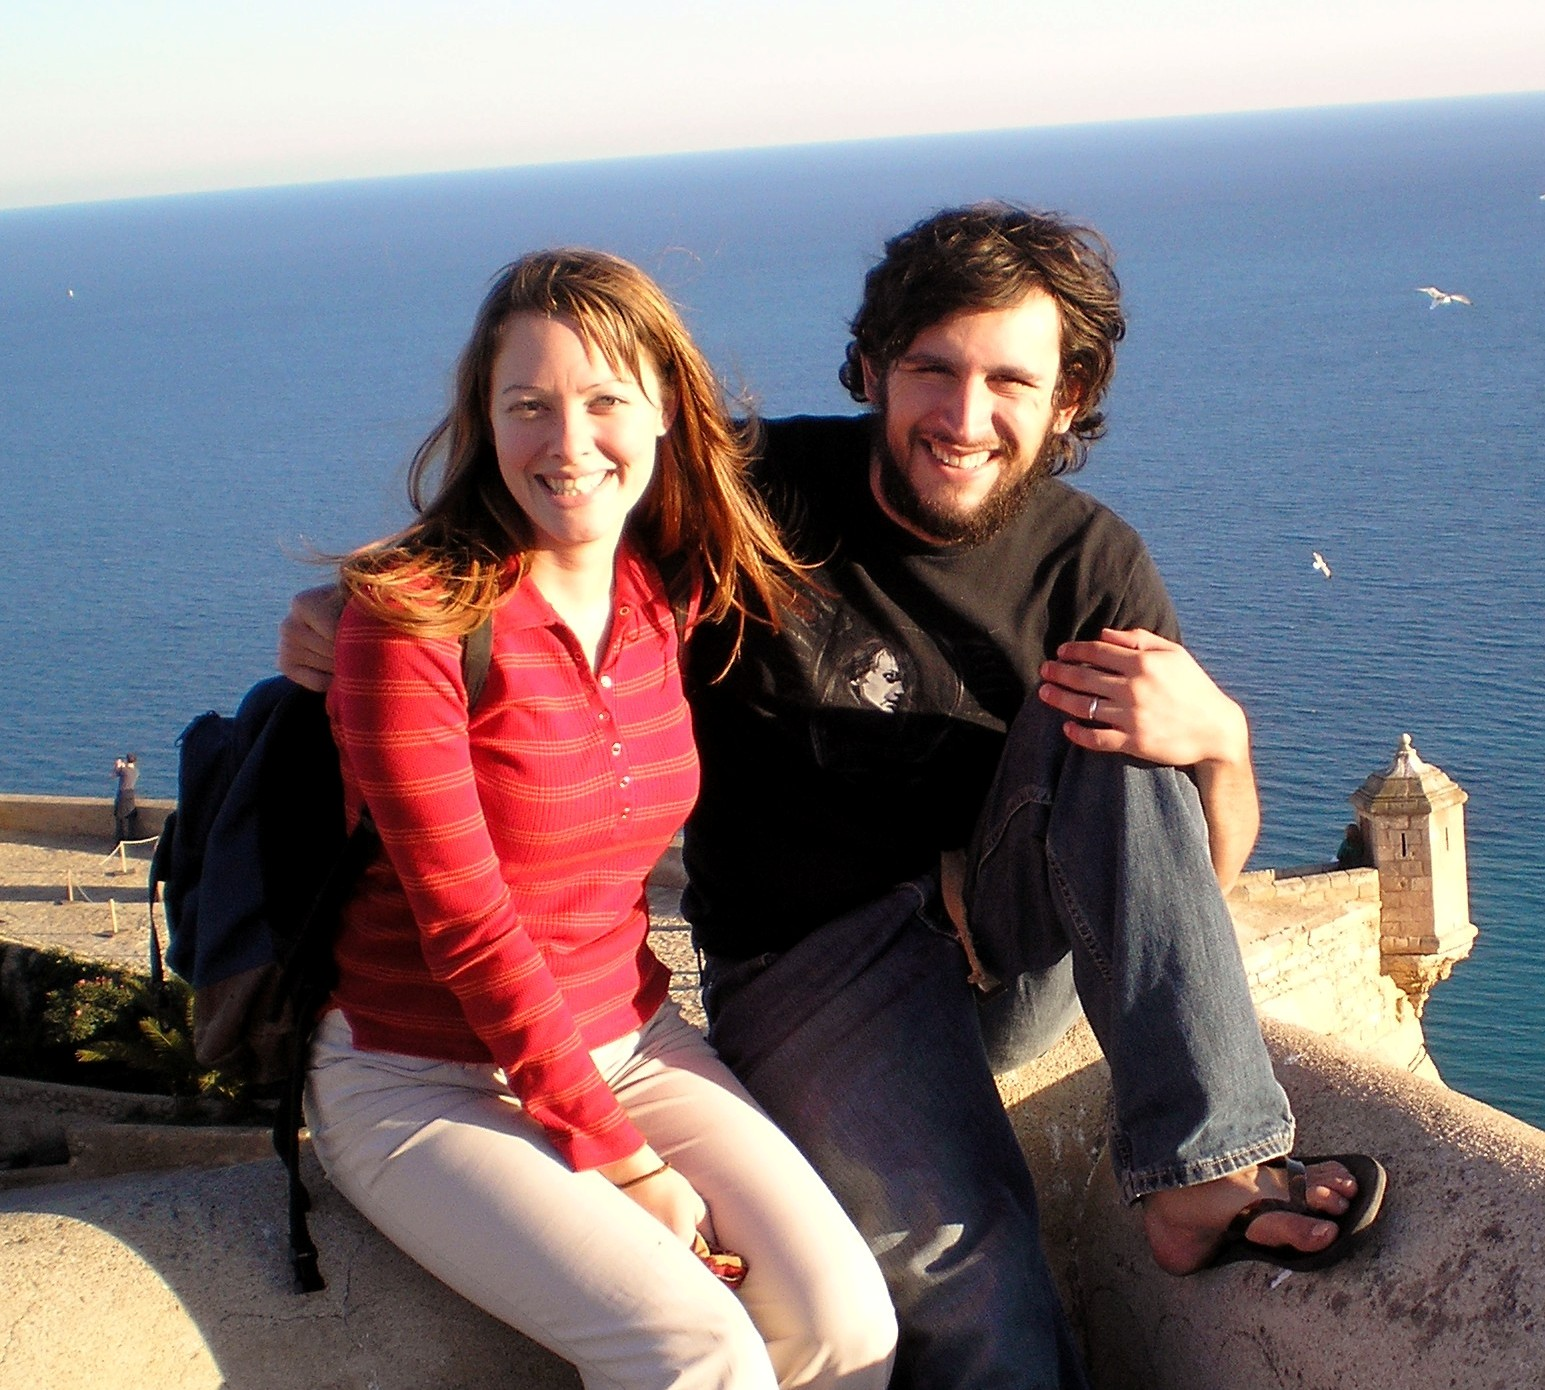 Our first trip overseas: Alicante, Spain at the city castle overlooking the Mediterranean Sea.